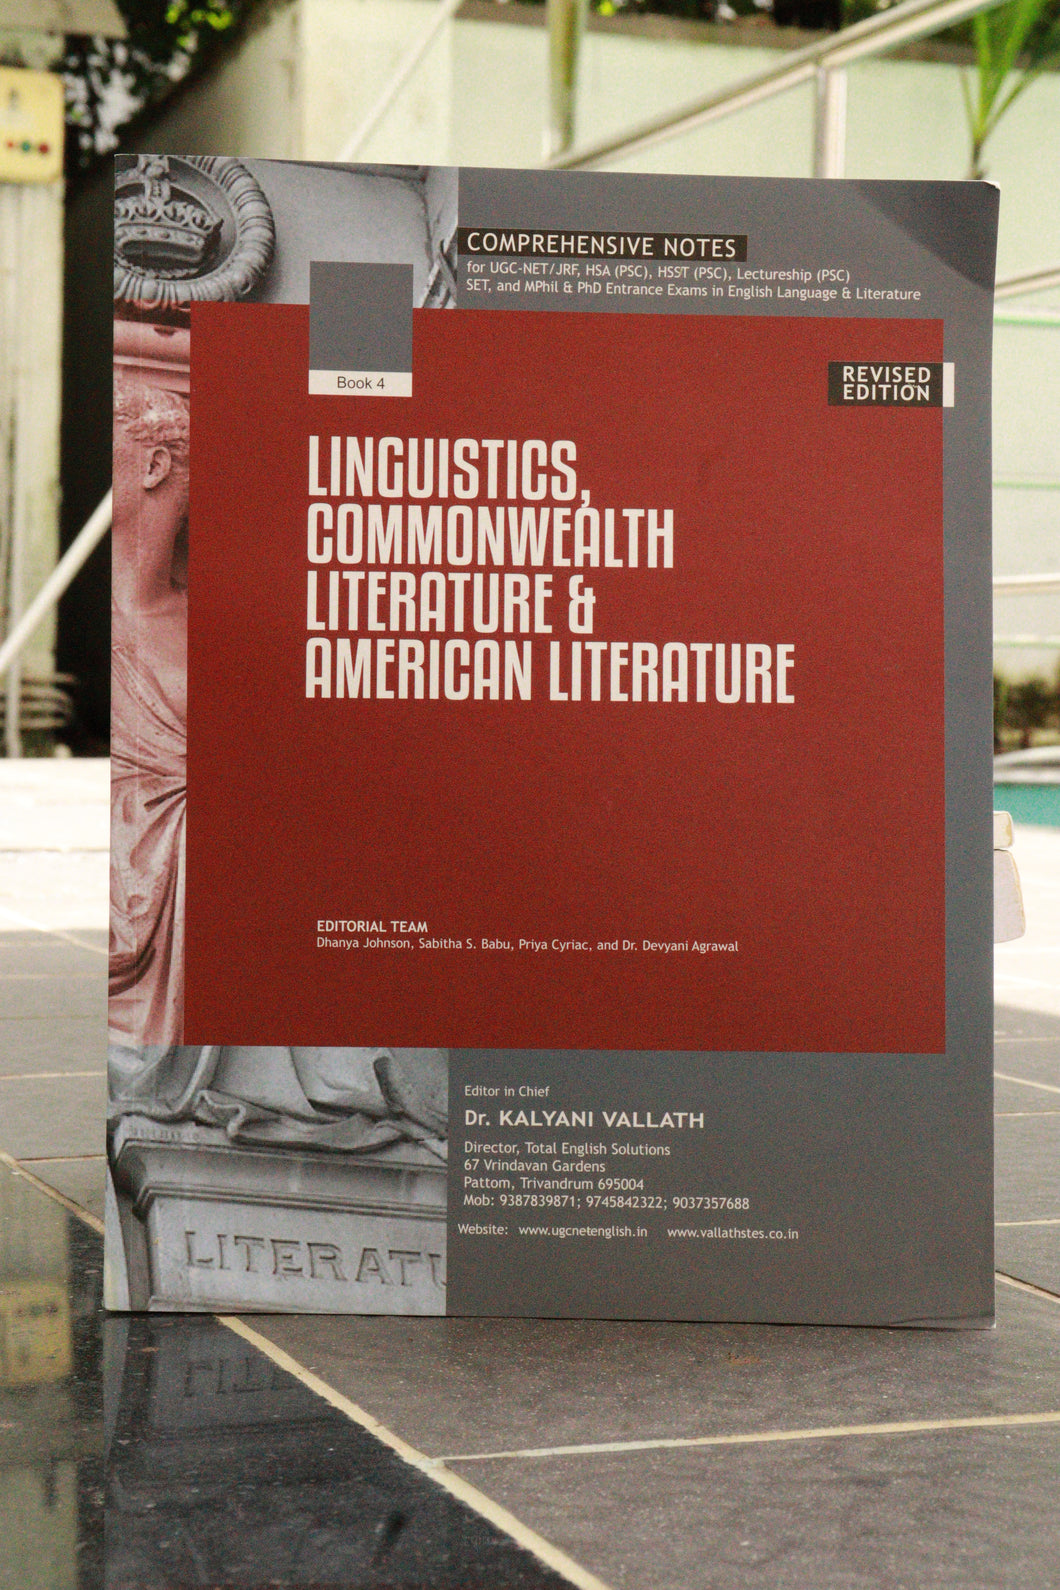 Book 4 - A Companion to Linguistics, Commonwealth Literature and American Literature